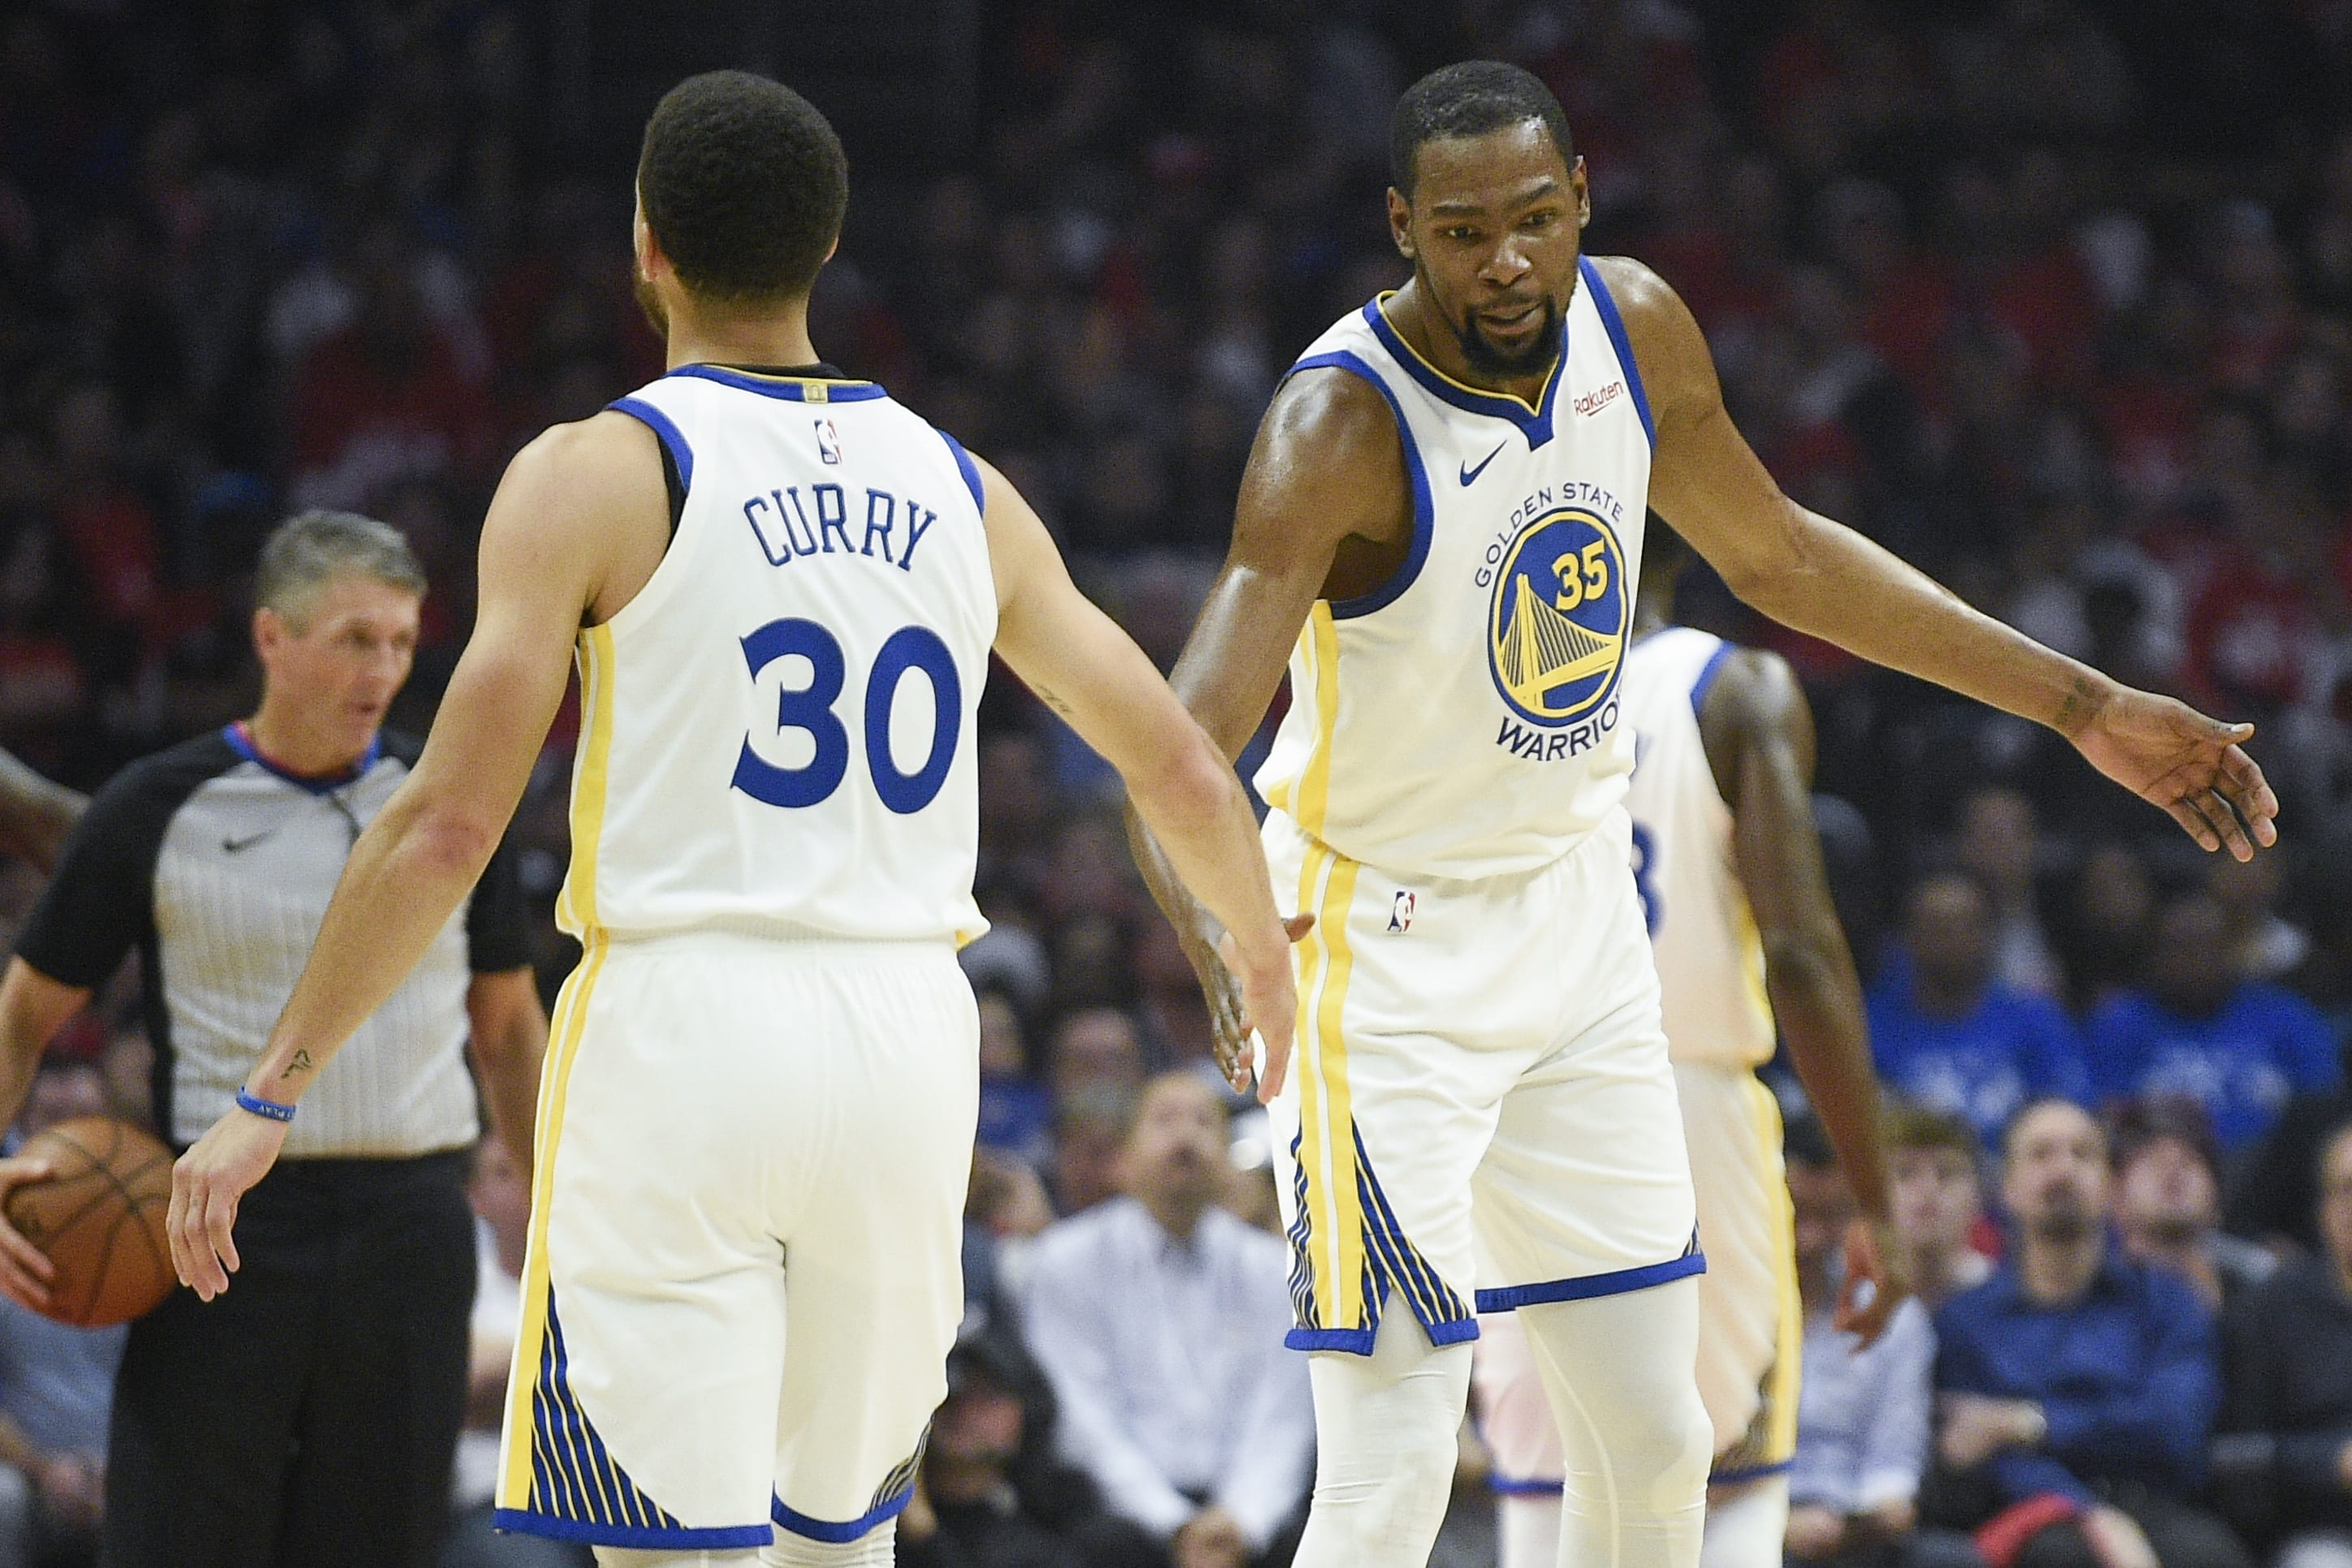 Kevin Durant Steph Curry Game 3 Clippers Warriors 2019 Playoffs